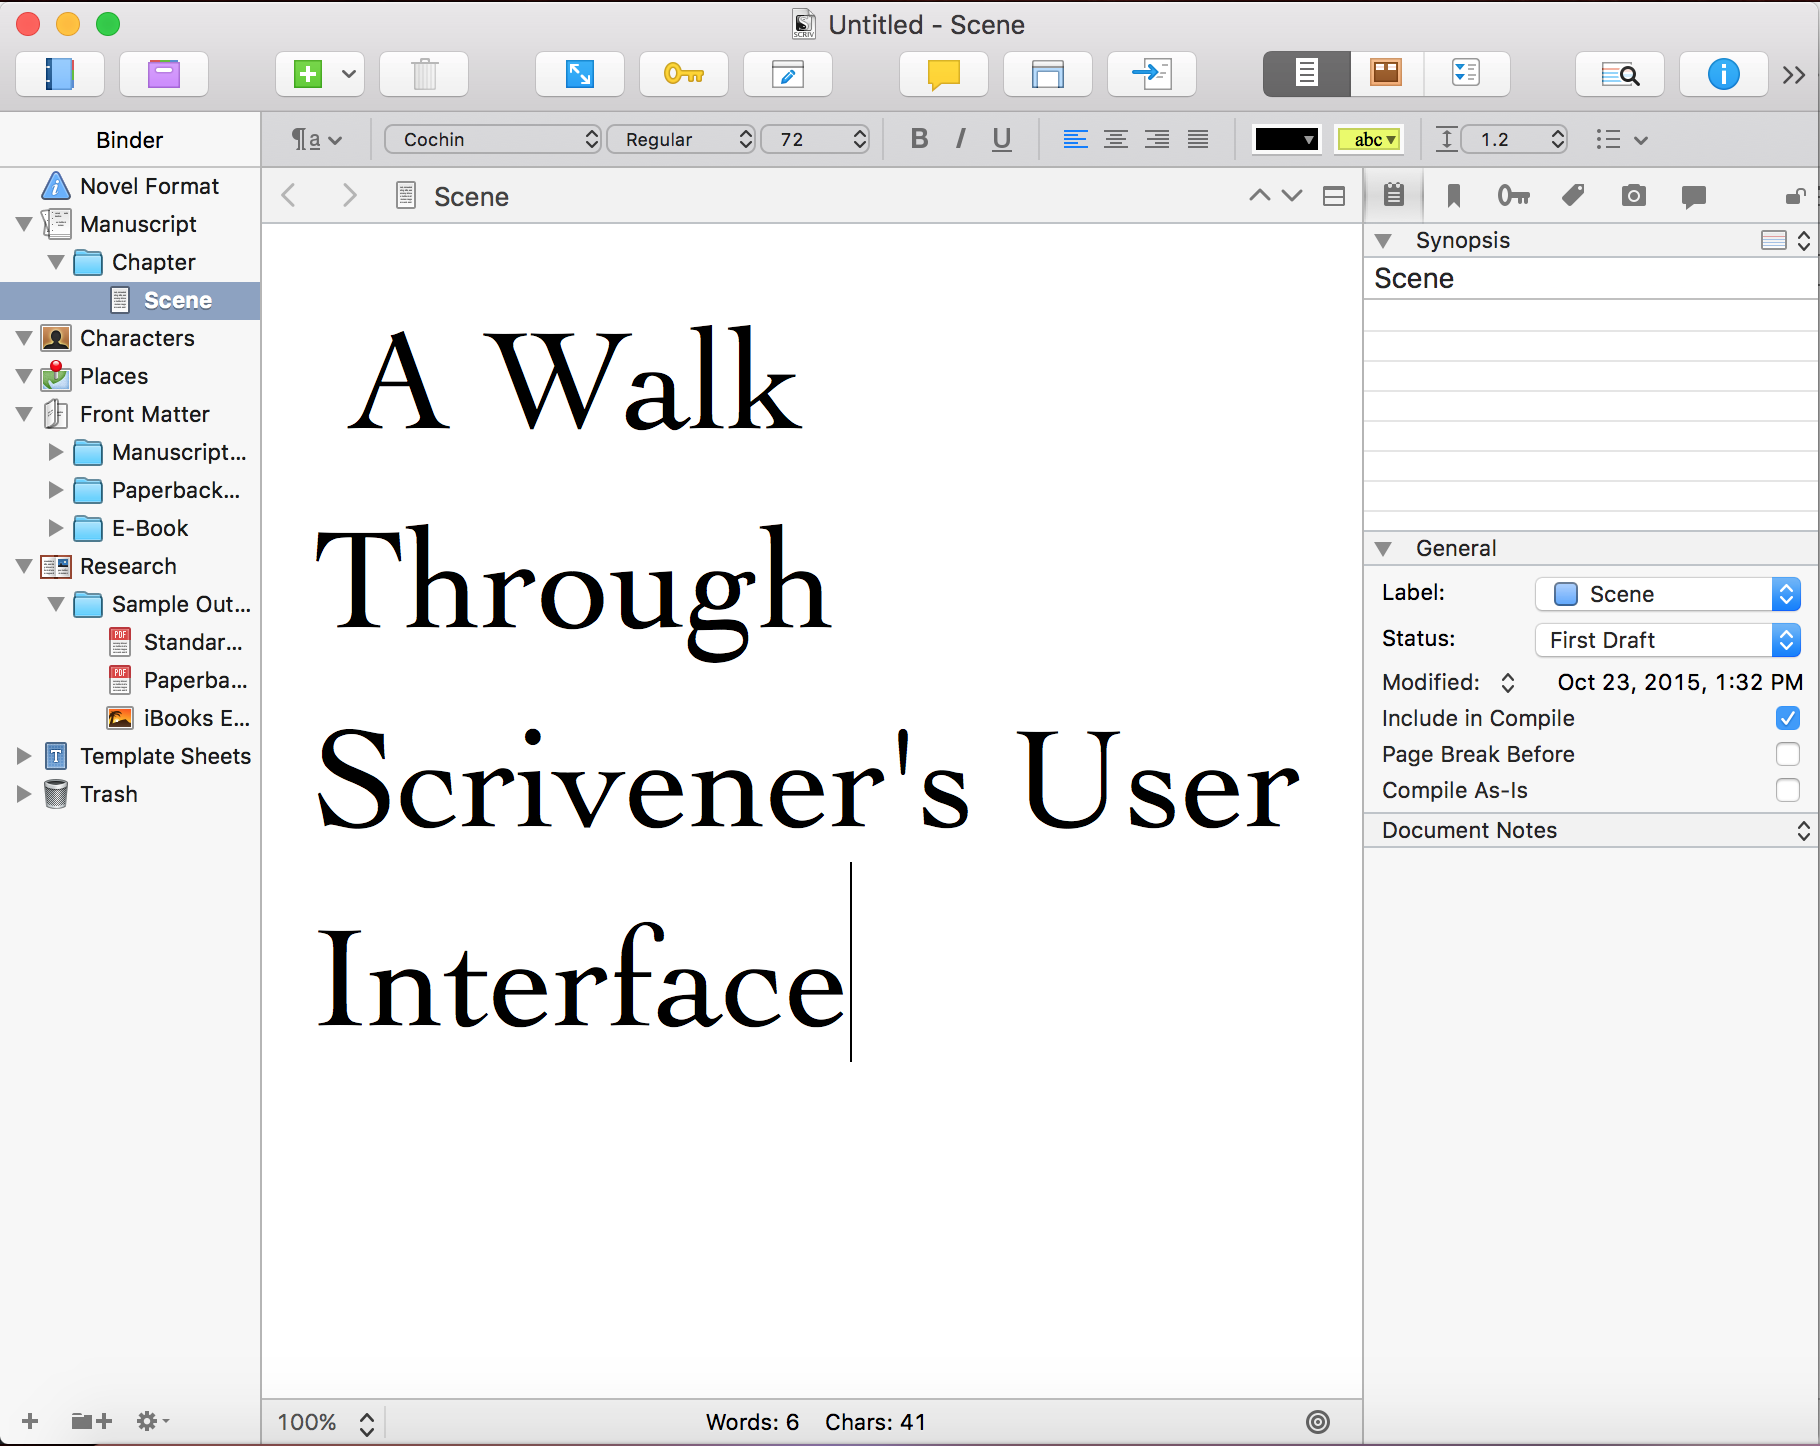 A Walk Through Scrivener's User Interface